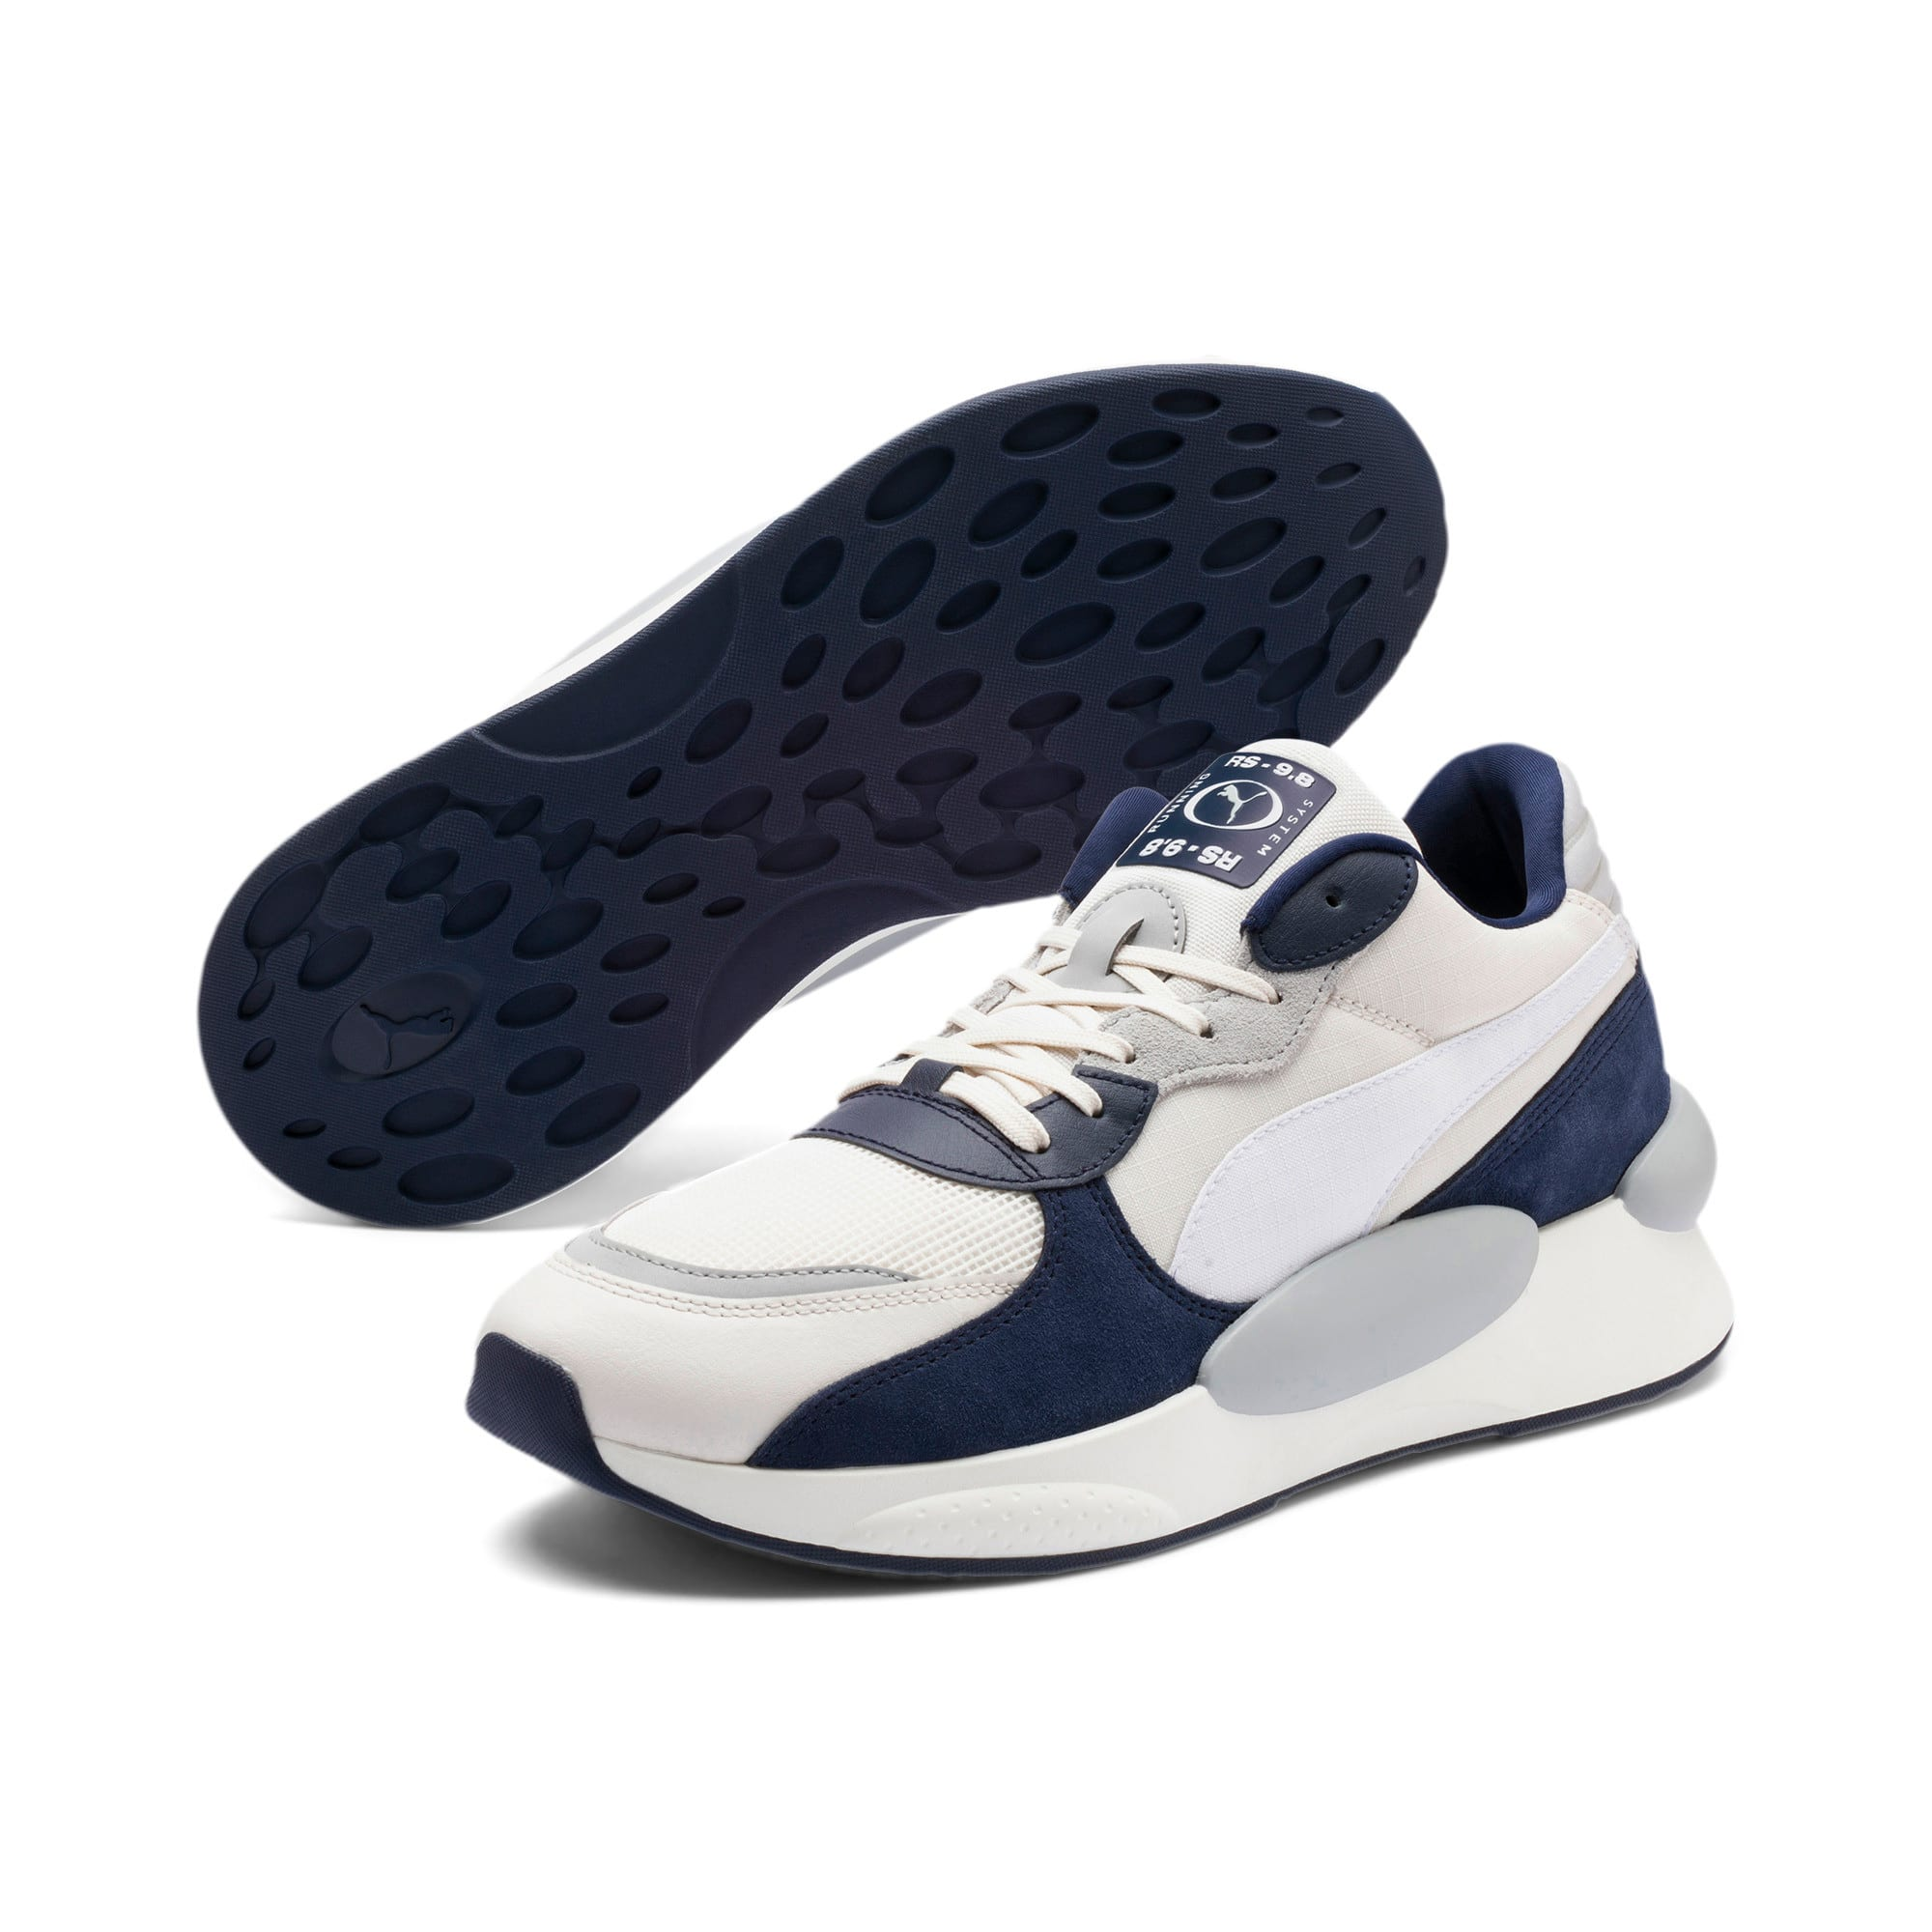 Anteprima 2 di RS 9.8 Space Trainers, Whisper White-Peacoat, medio